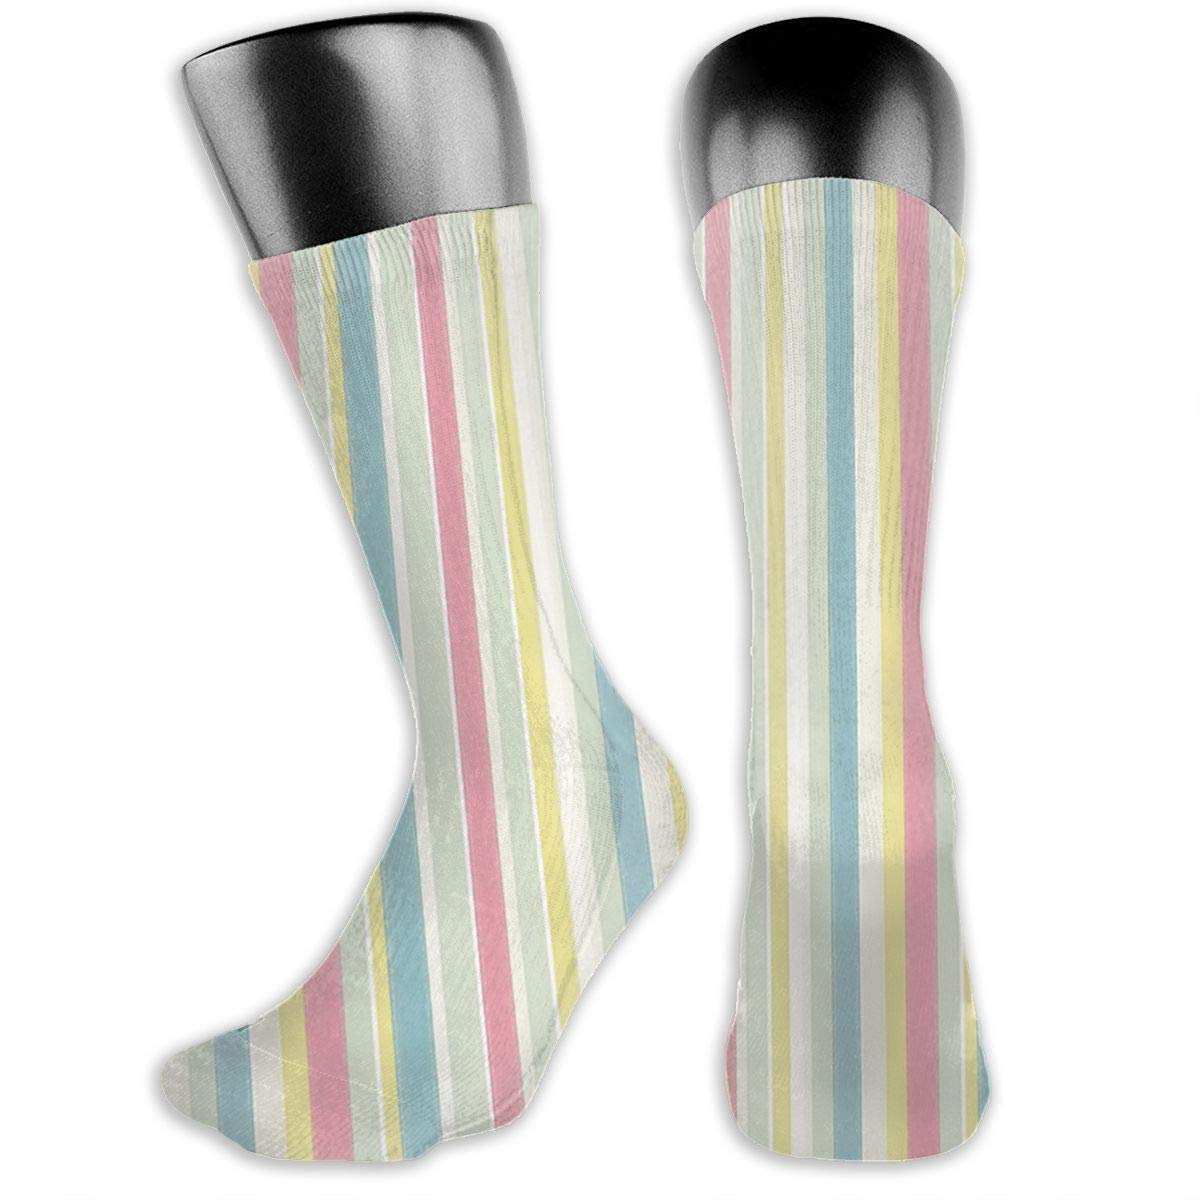 Tailor/_stripe/_pastel Cotton Casual Colorful Fun Below Knee High Athletic Socks